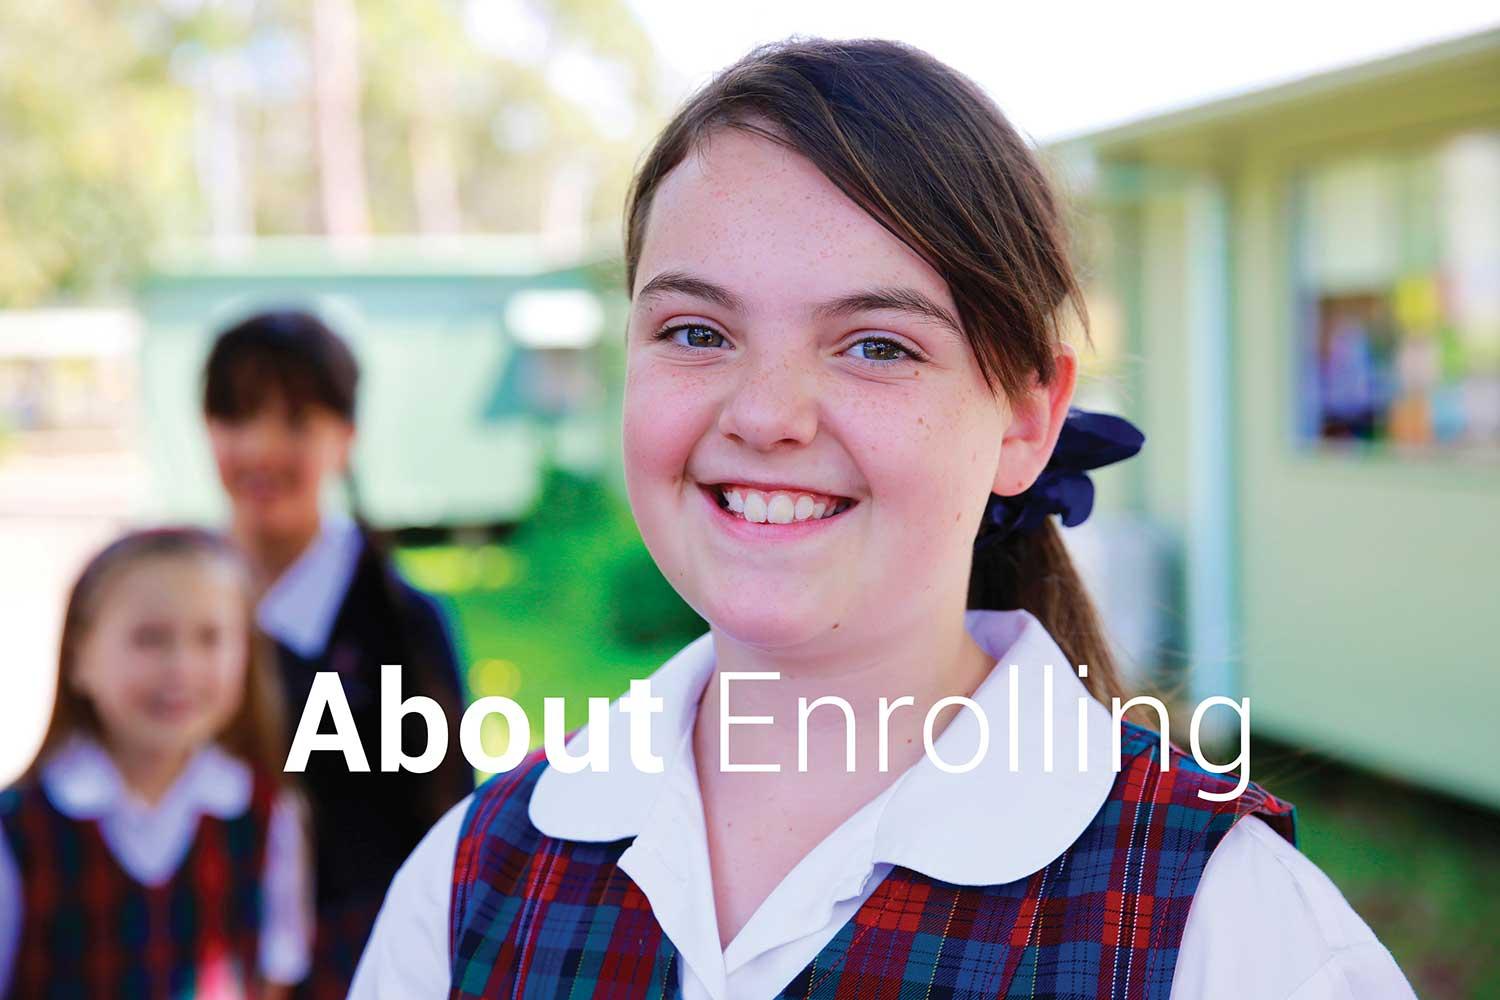 charlton christian college about enrolling